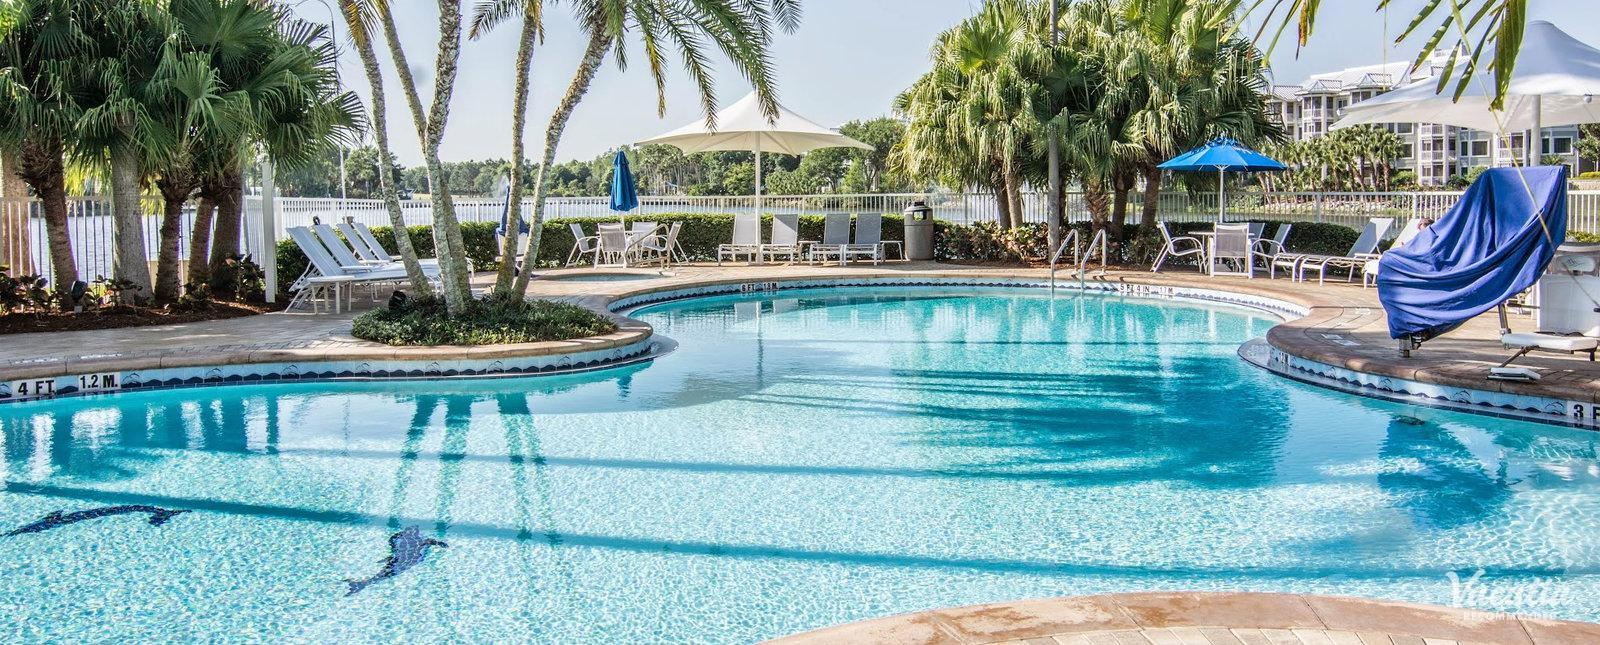 Marriott's Cypress Harbour family friendly pools